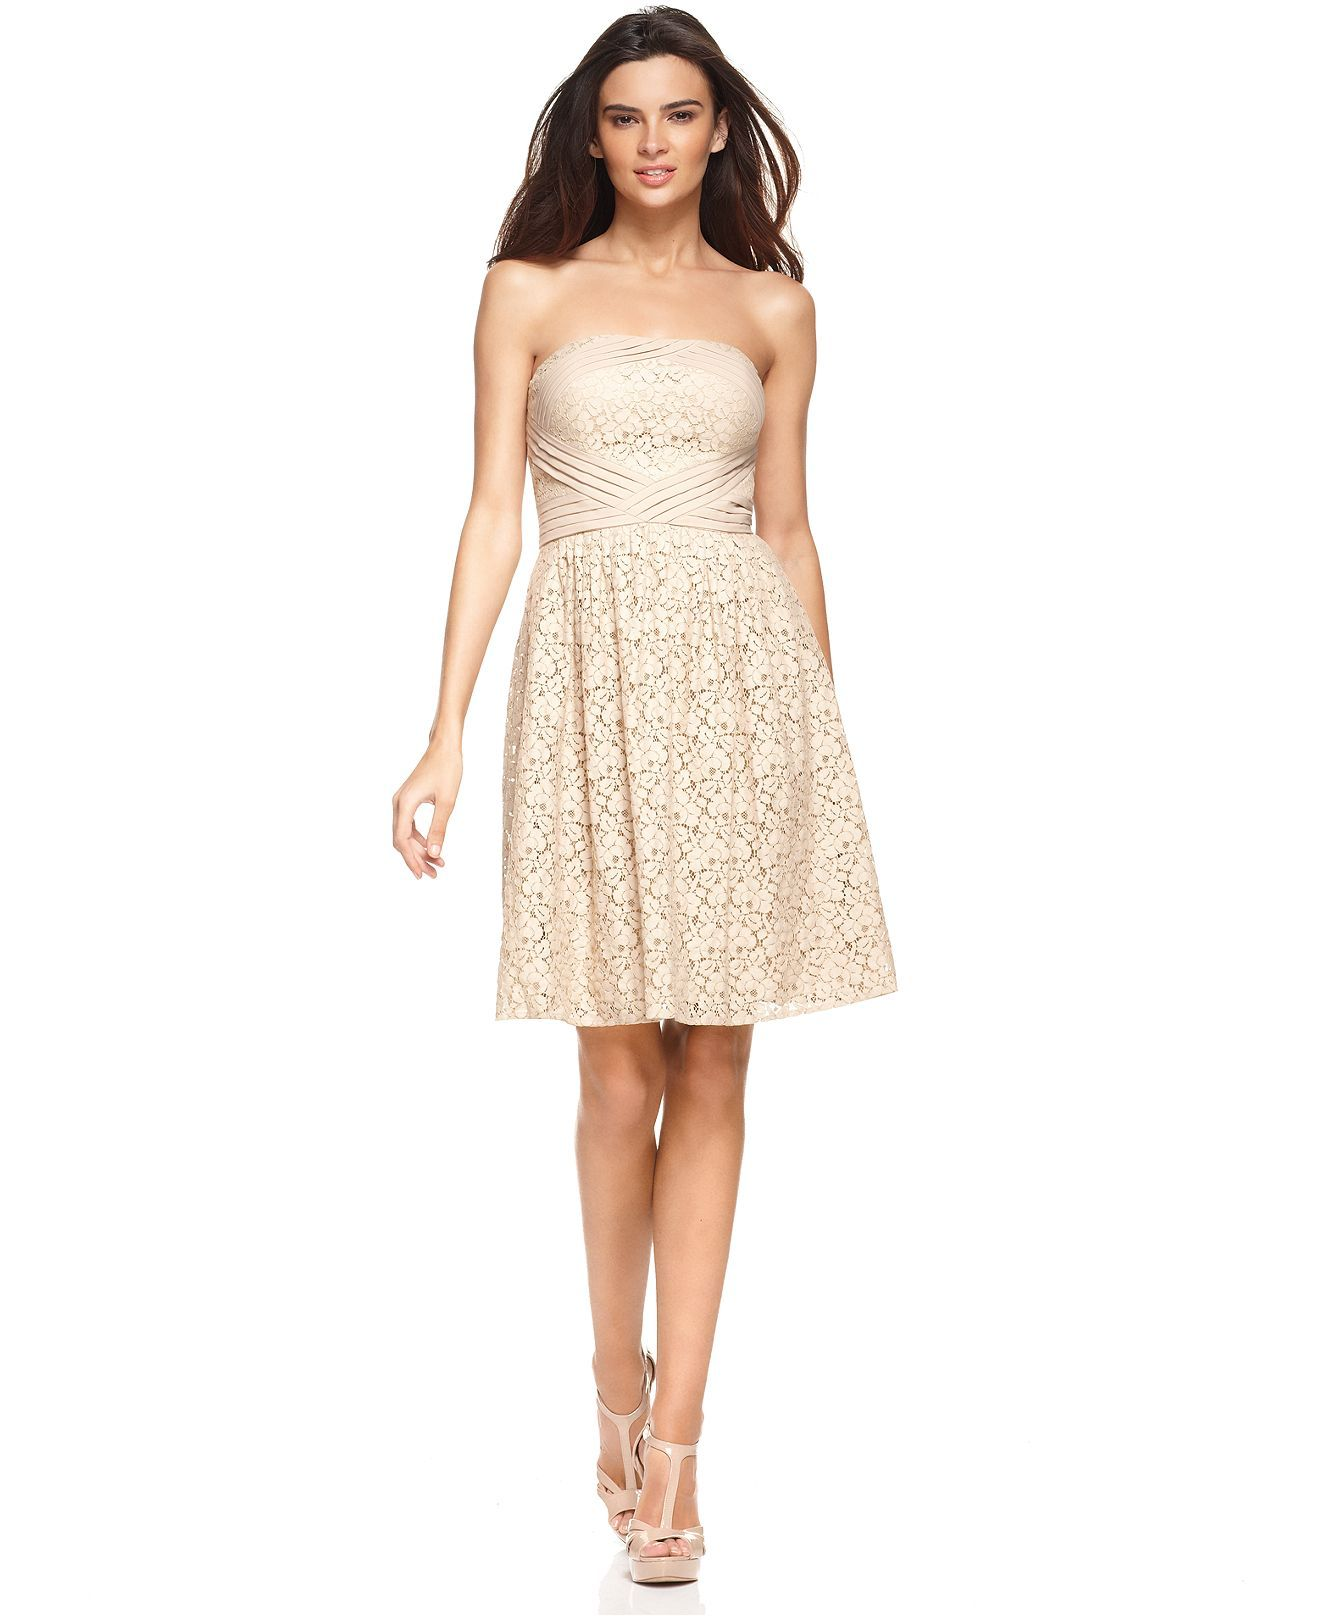 Vince camuto dress strapless lace pleated a line at macys i vince camuto dress strapless lace pleated a line at macys i ombrellifo Images